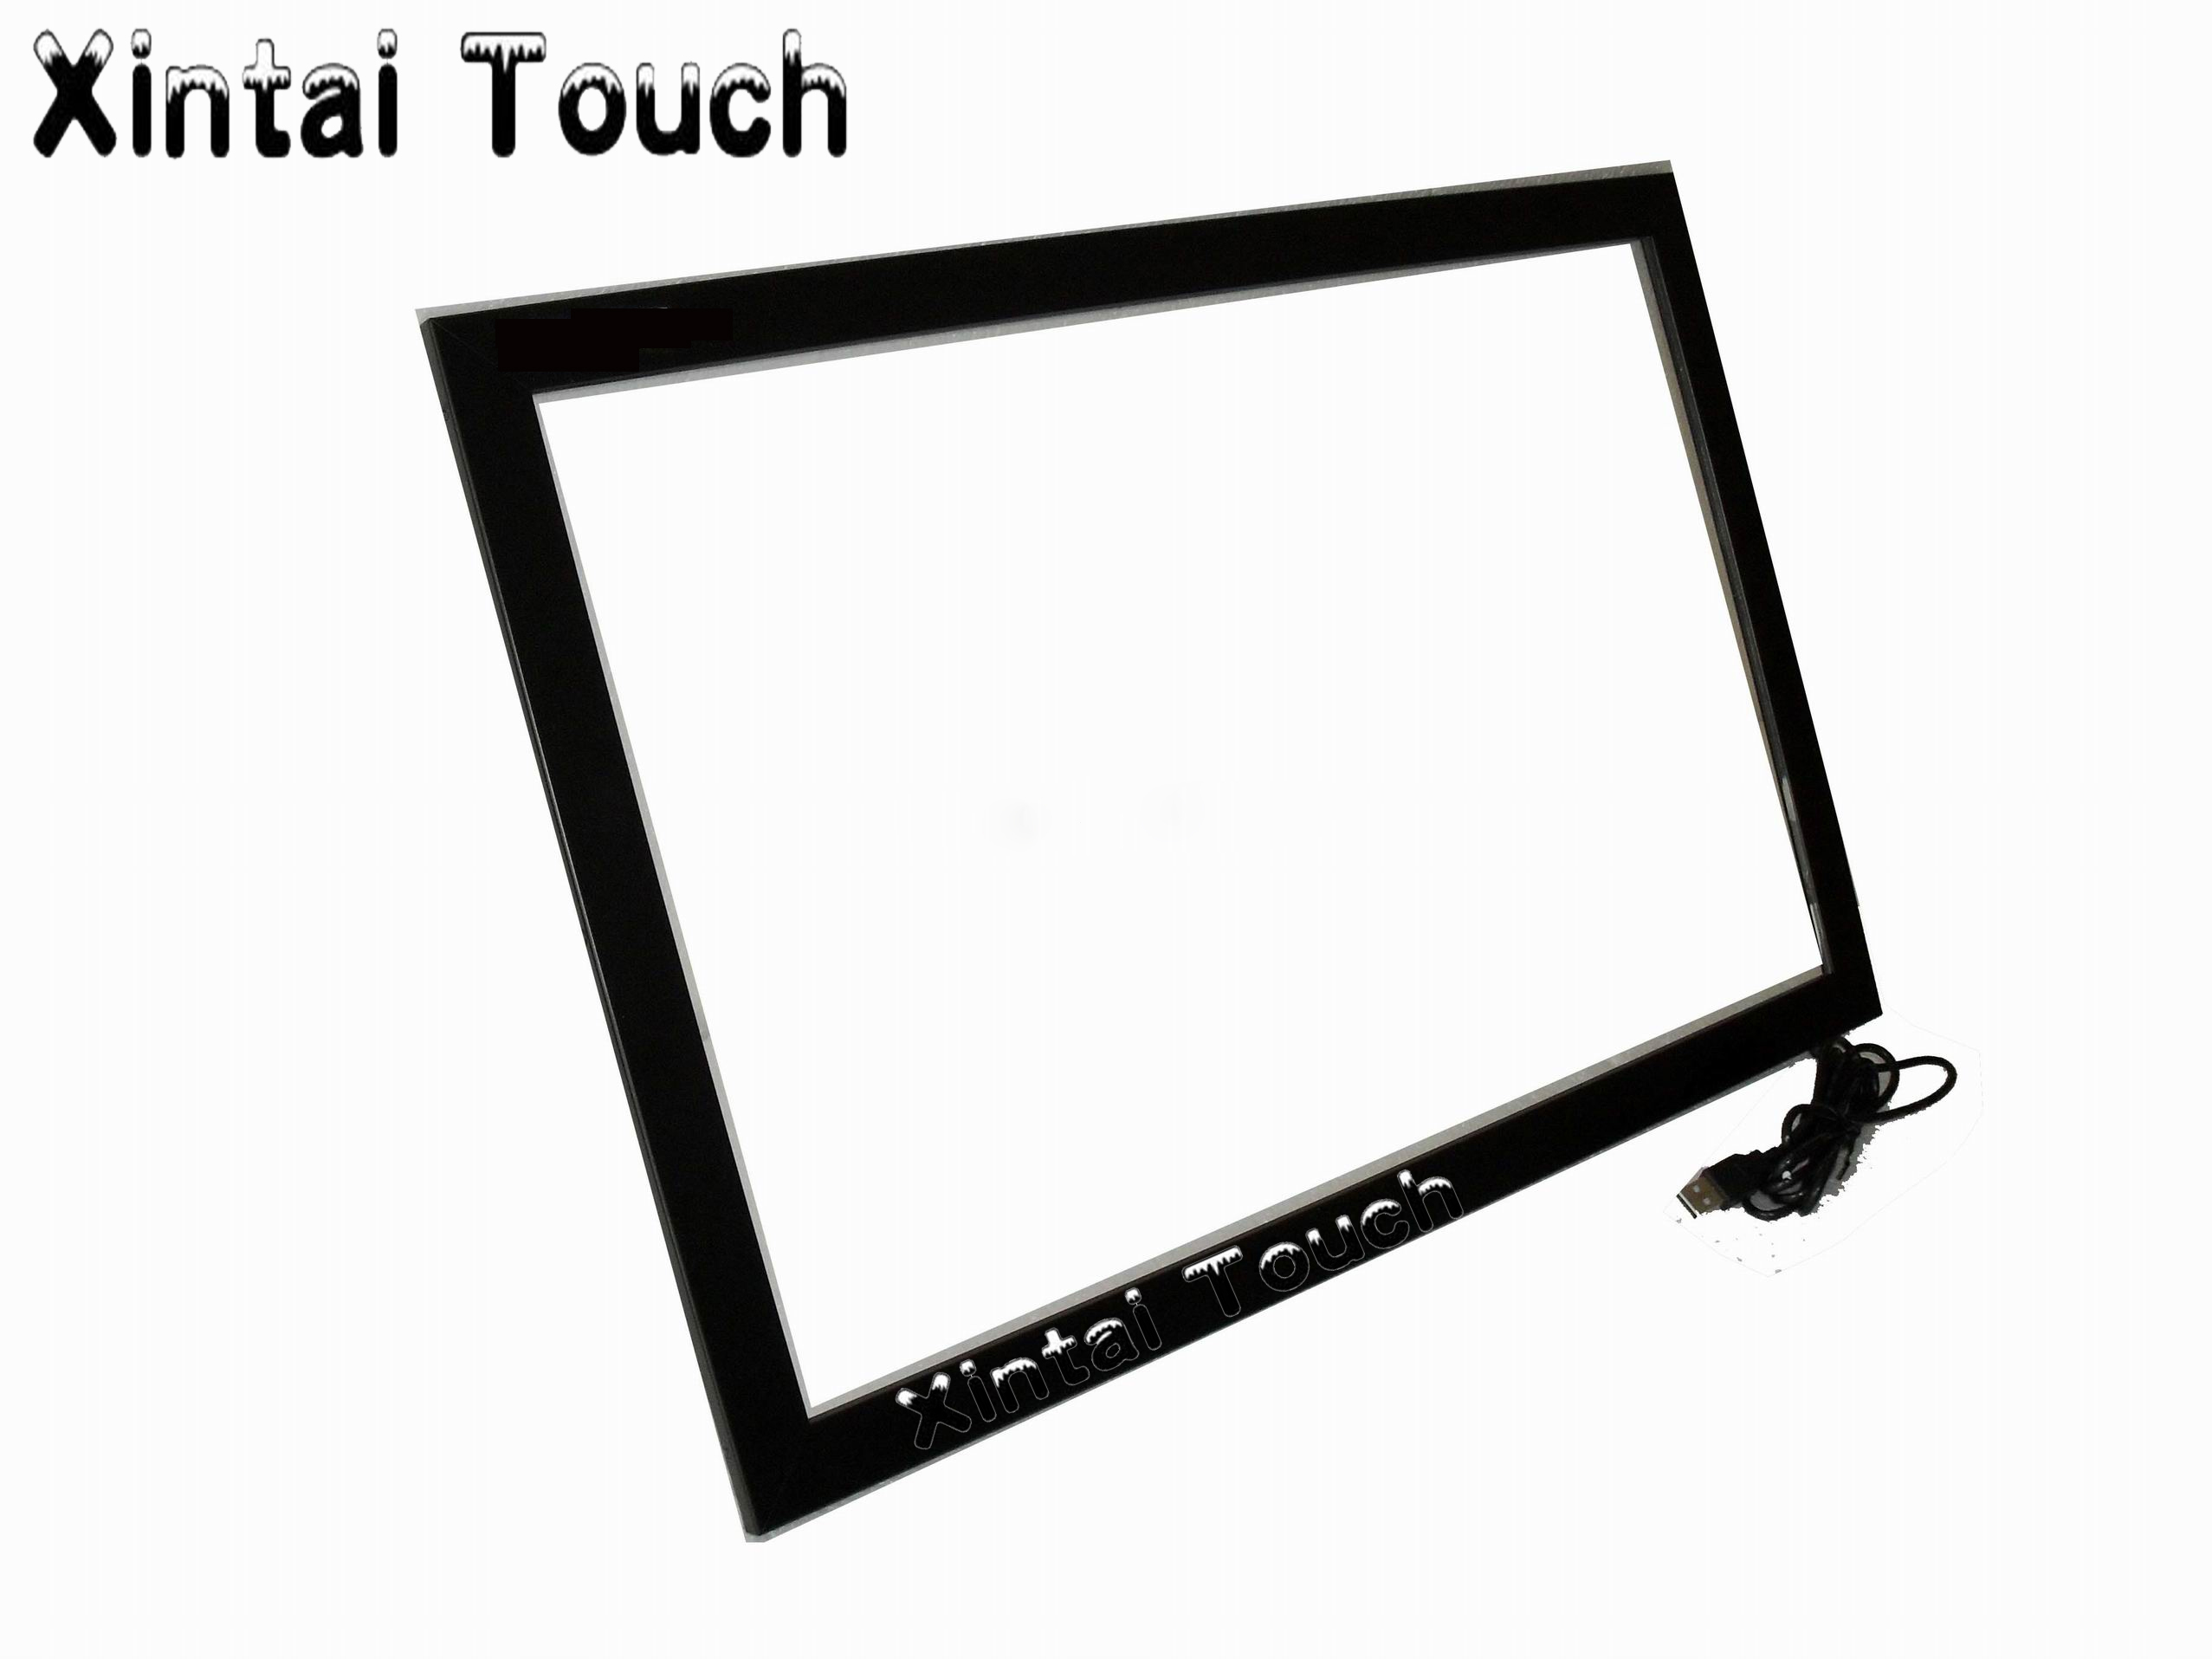 Hot sale! Latest version 60 Inch USB IR Multi Touch Screen Panel/touch screen overlay 10 Touch Points for touch table, kioskHot sale! Latest version 60 Inch USB IR Multi Touch Screen Panel/touch screen overlay 10 Touch Points for touch table, kiosk